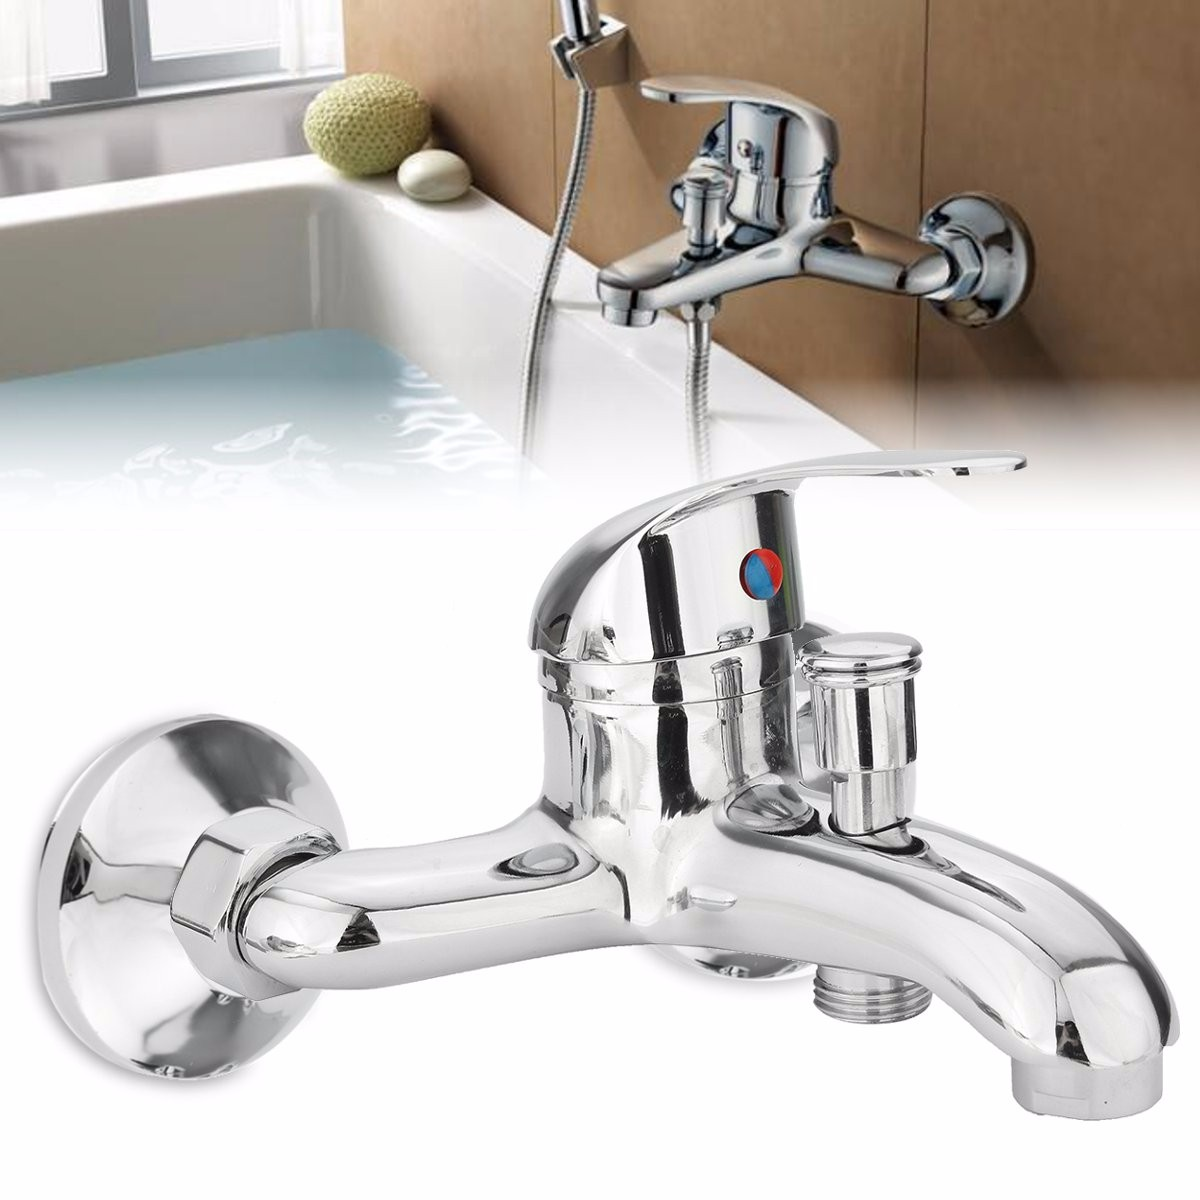 Chrome Bathroom Mixer Faucet Tap Bathtub Shower Head Hot Cold Mixing Vavle Knob Spout Wall Mount